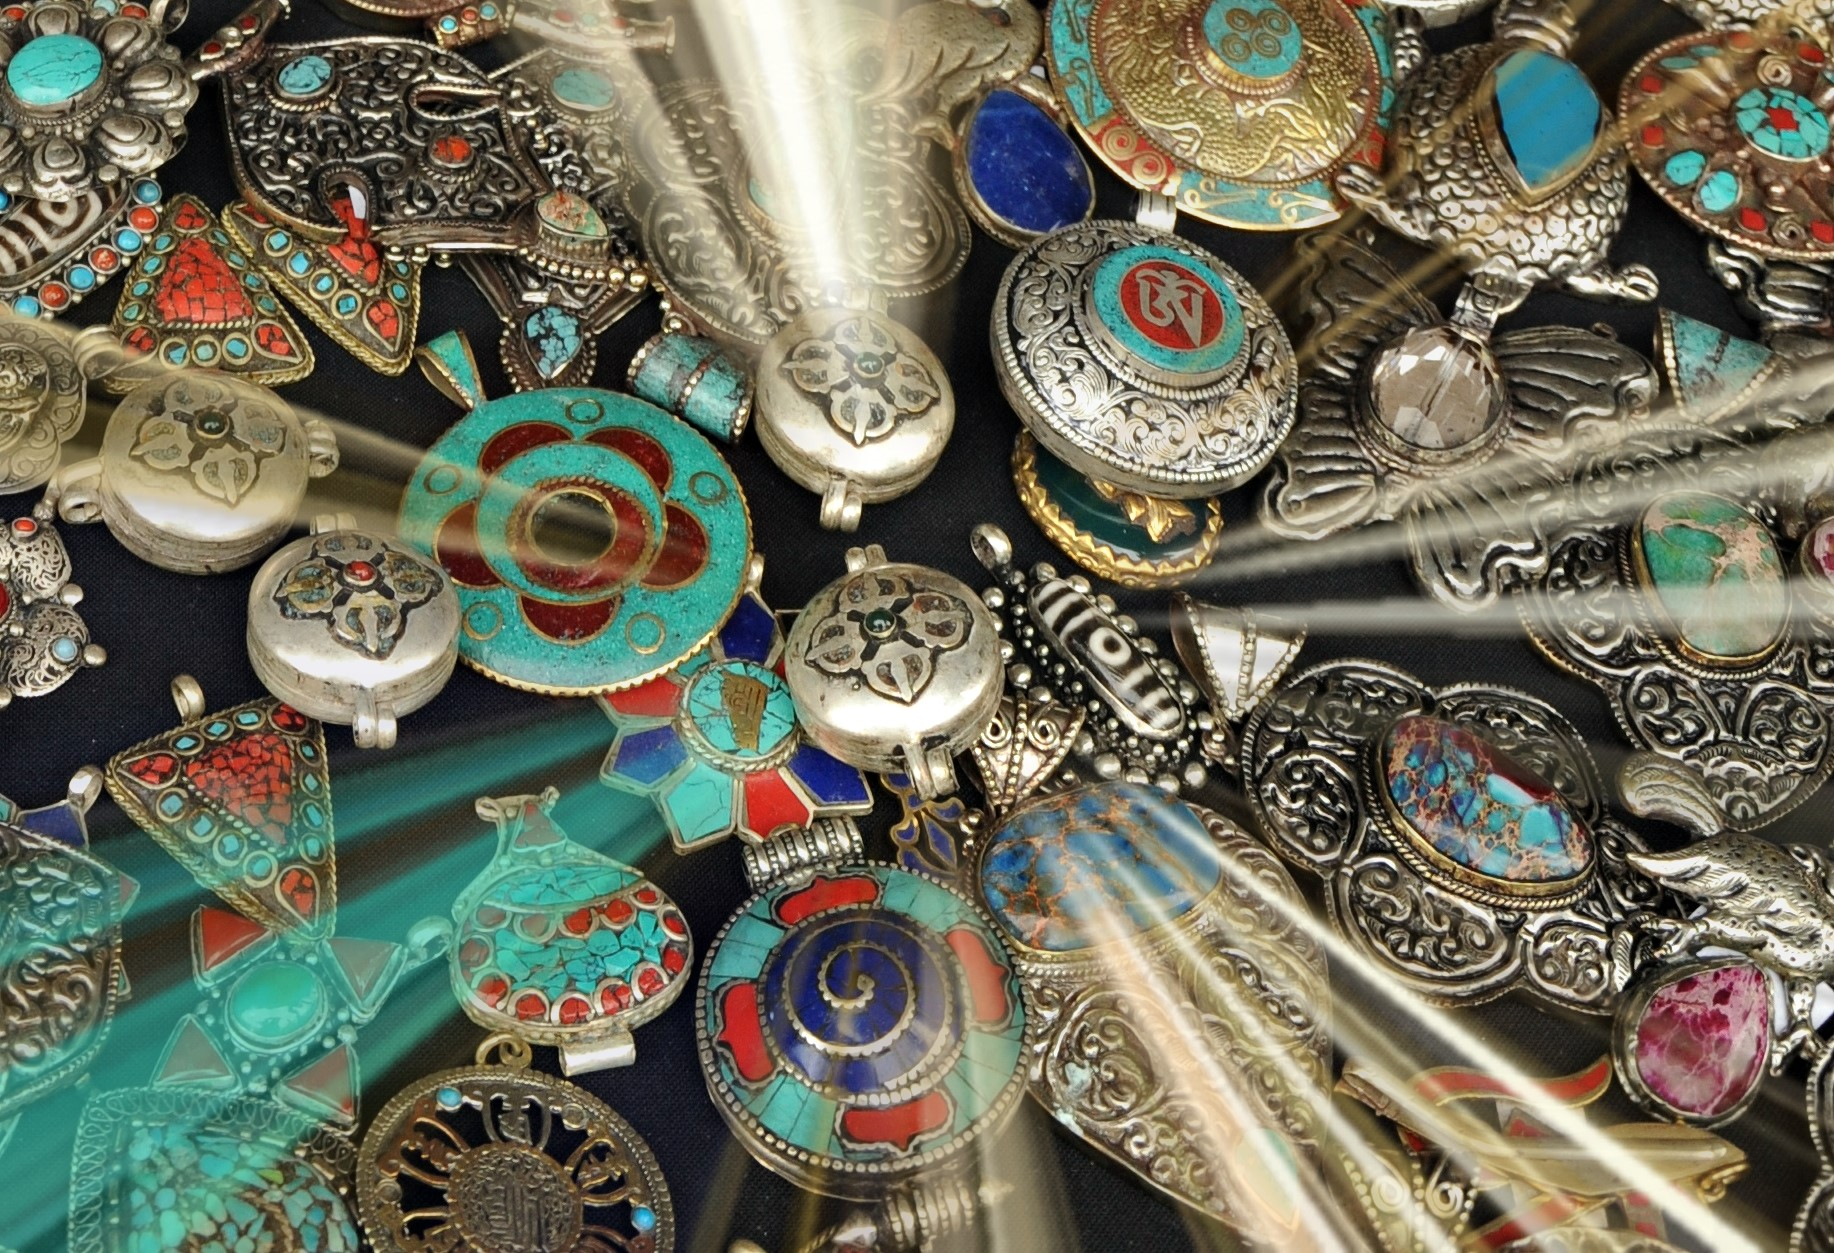 how to choose buddhist jewellery jewelry necklaces pendants enthusiasticbuddhist.com